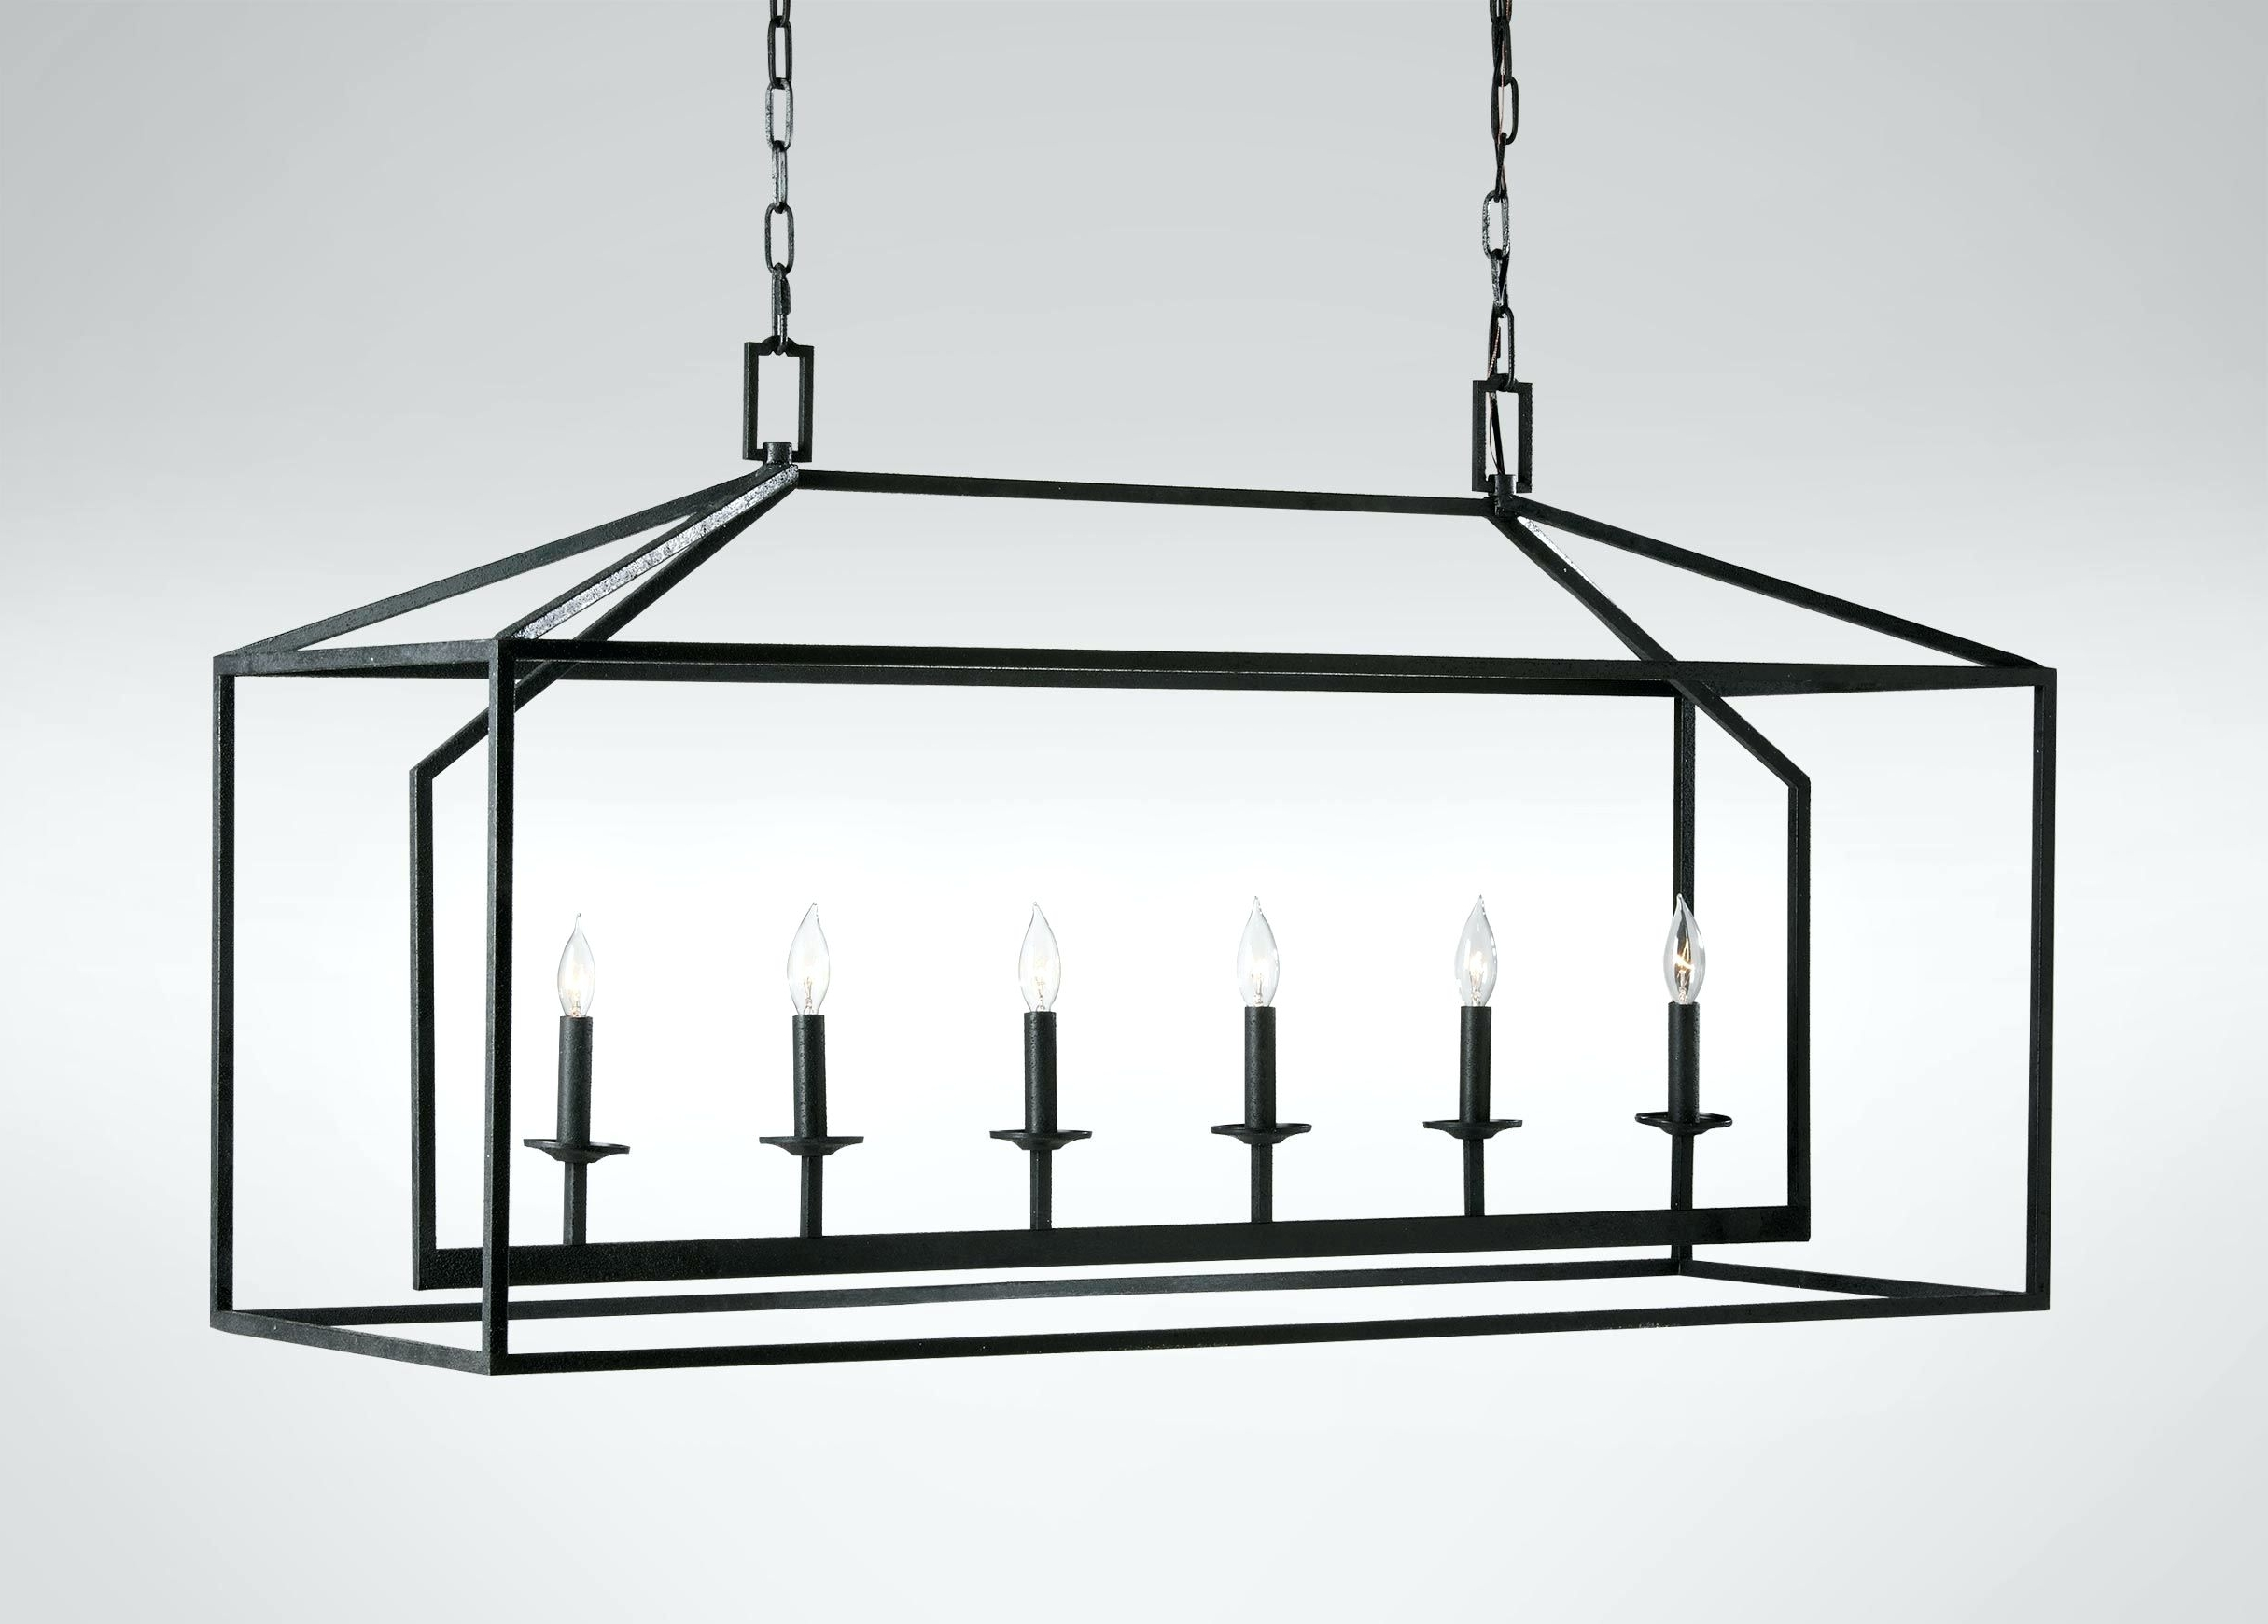 Indoor Lantern Chandelier With Regard To Best And Newest Chandeliers Design : Marvelous Black Iron Lantern Chandelier Current (View 10 of 20)